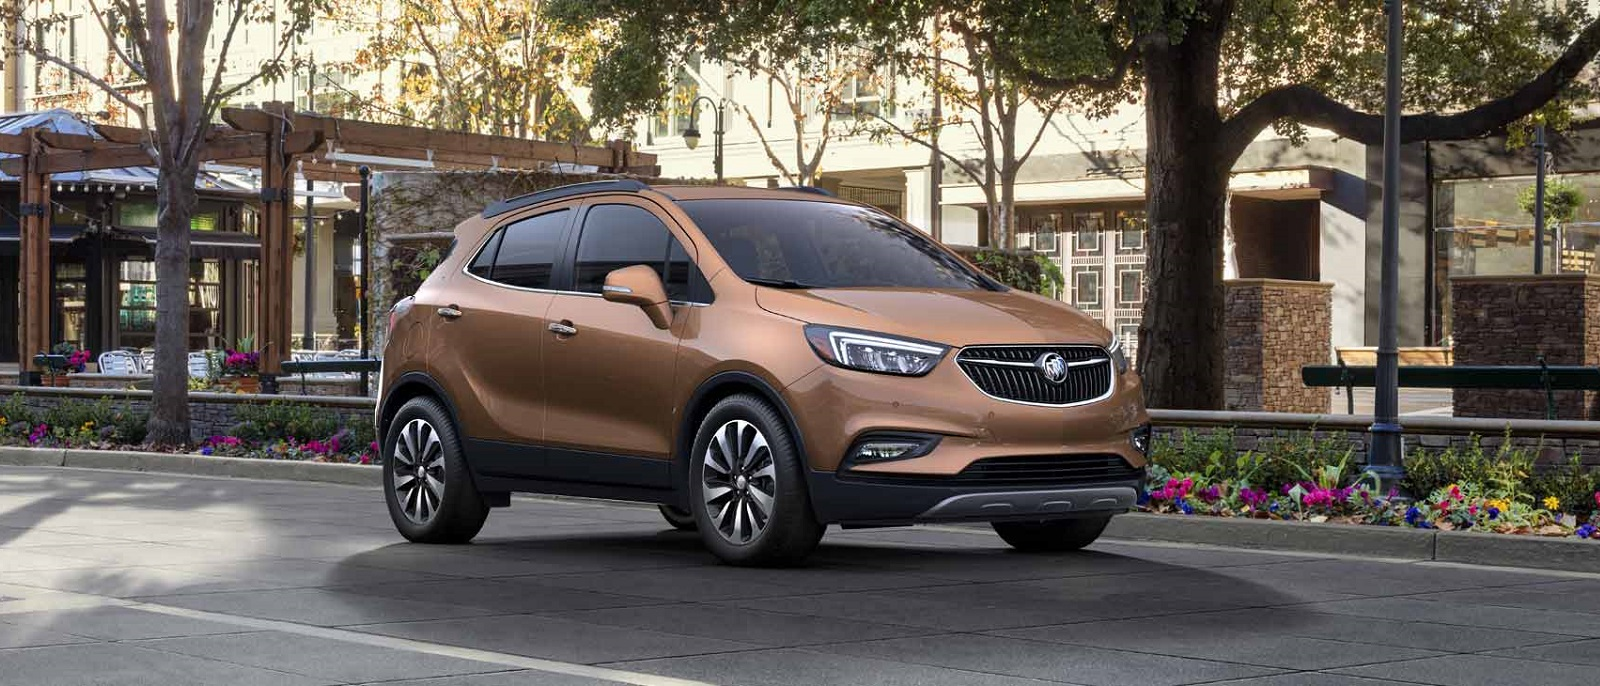 Take A Look At The All New 2017 Buick Encore